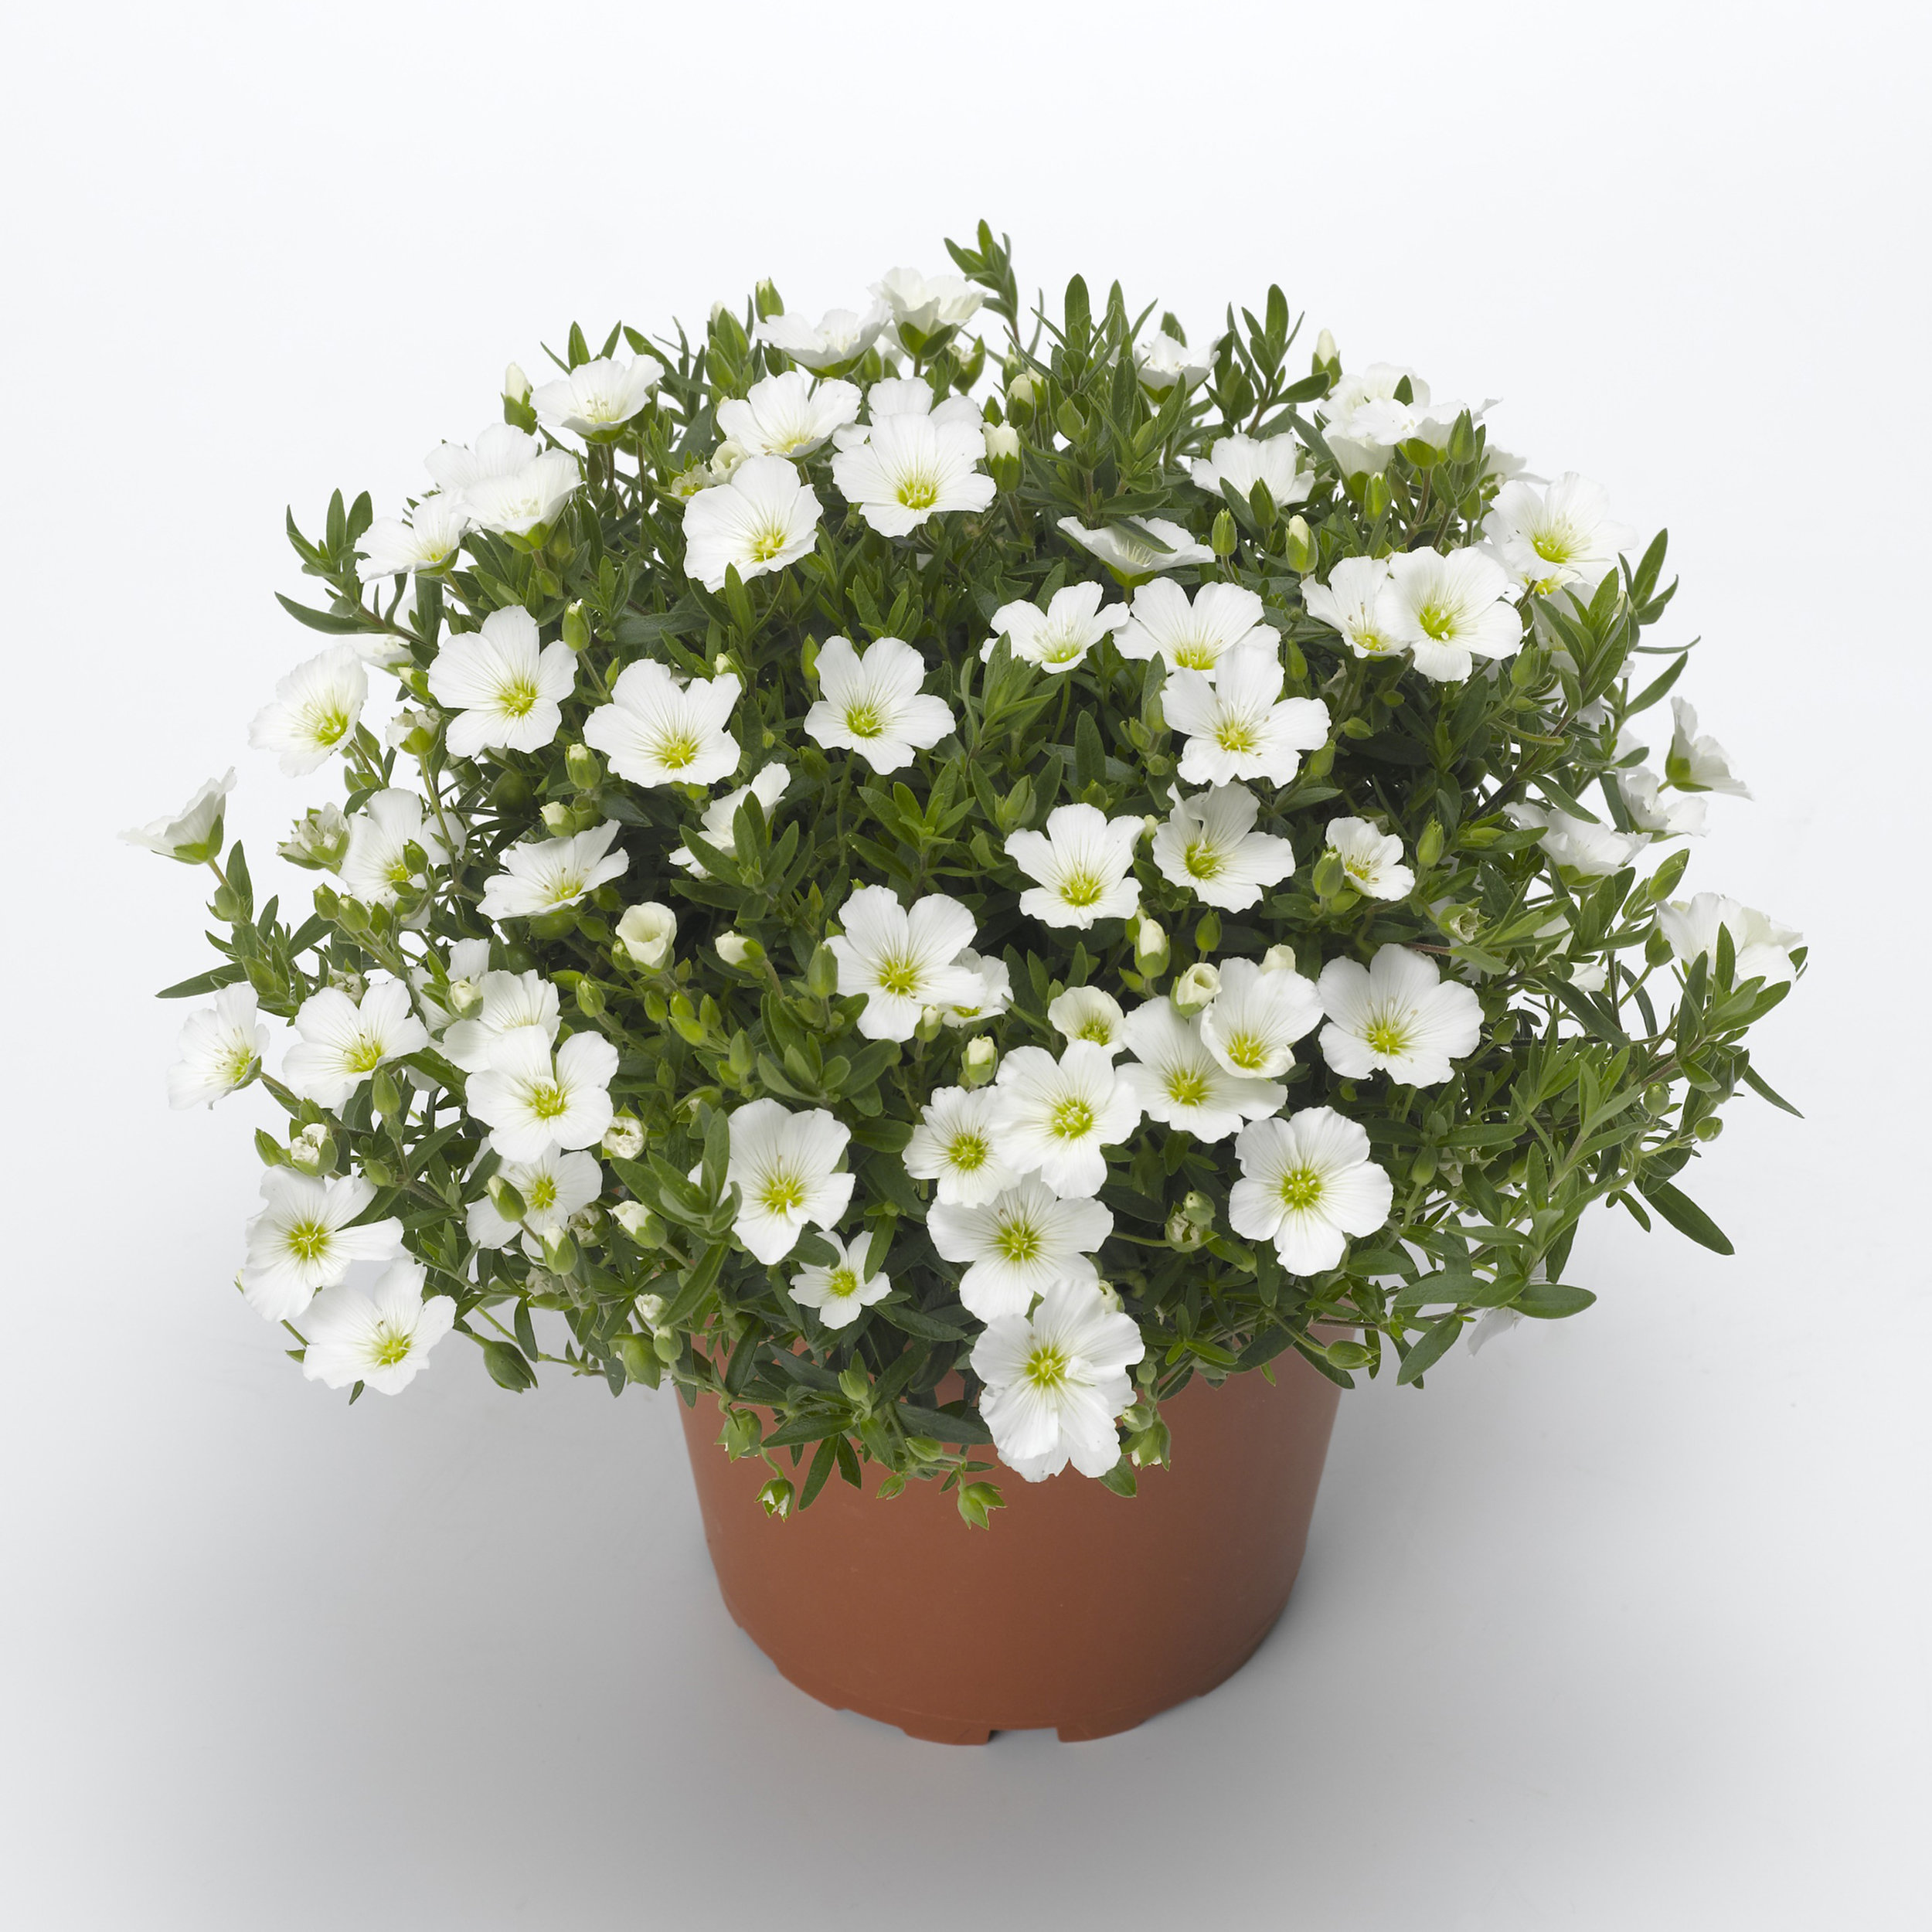 HR_Vegetative_Arenaria_Summer_White_Summer_White_70018116.jpg